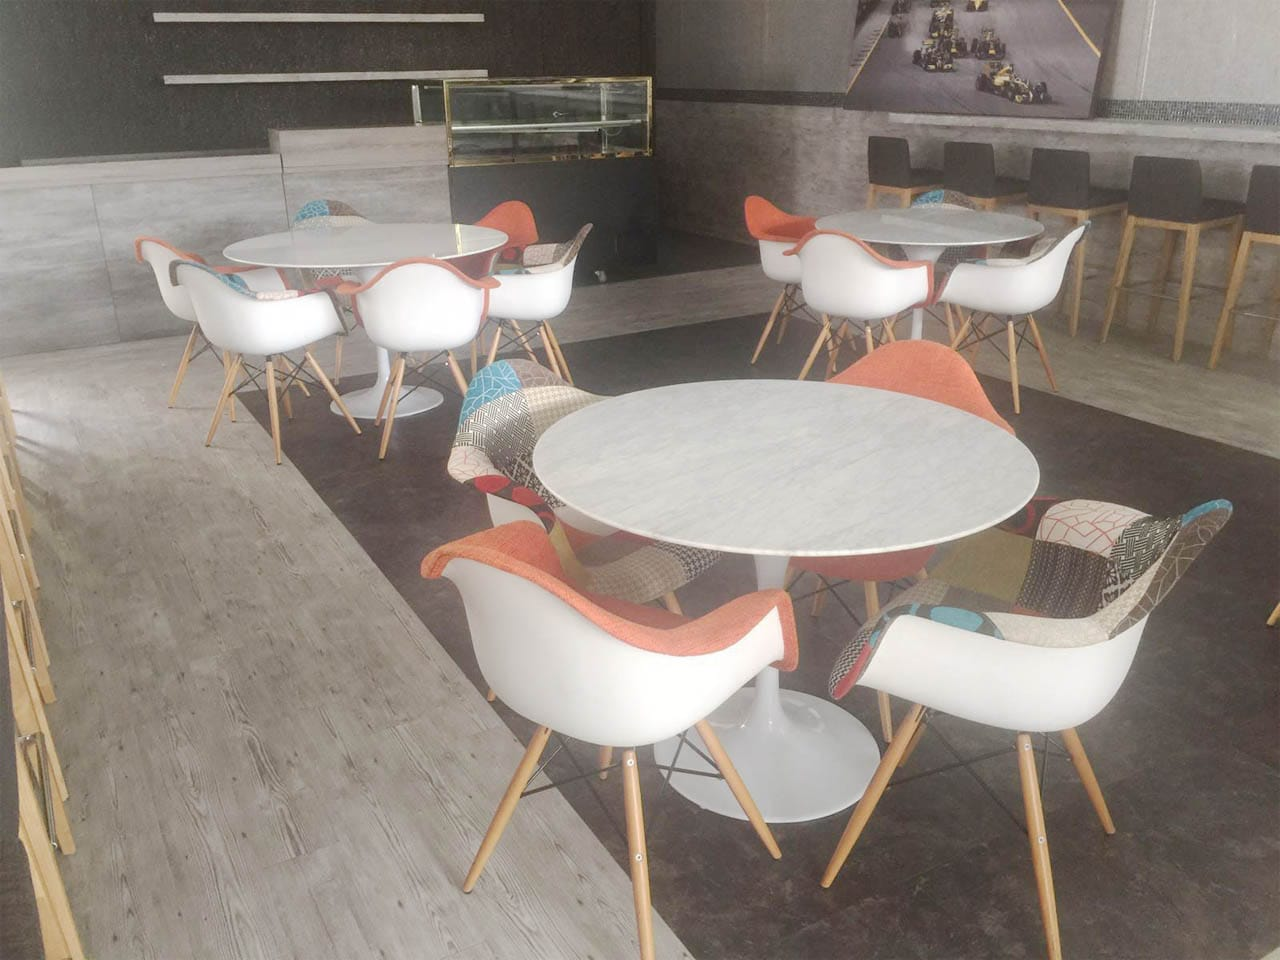 Formula 1 GrandPrix - F1 PIT Building | Product Seen: [Tulip Dining Table-Round Marble (replica), Gum - Patch + Tower Armchair & Gum - Half Fabric + Tower Armchair]